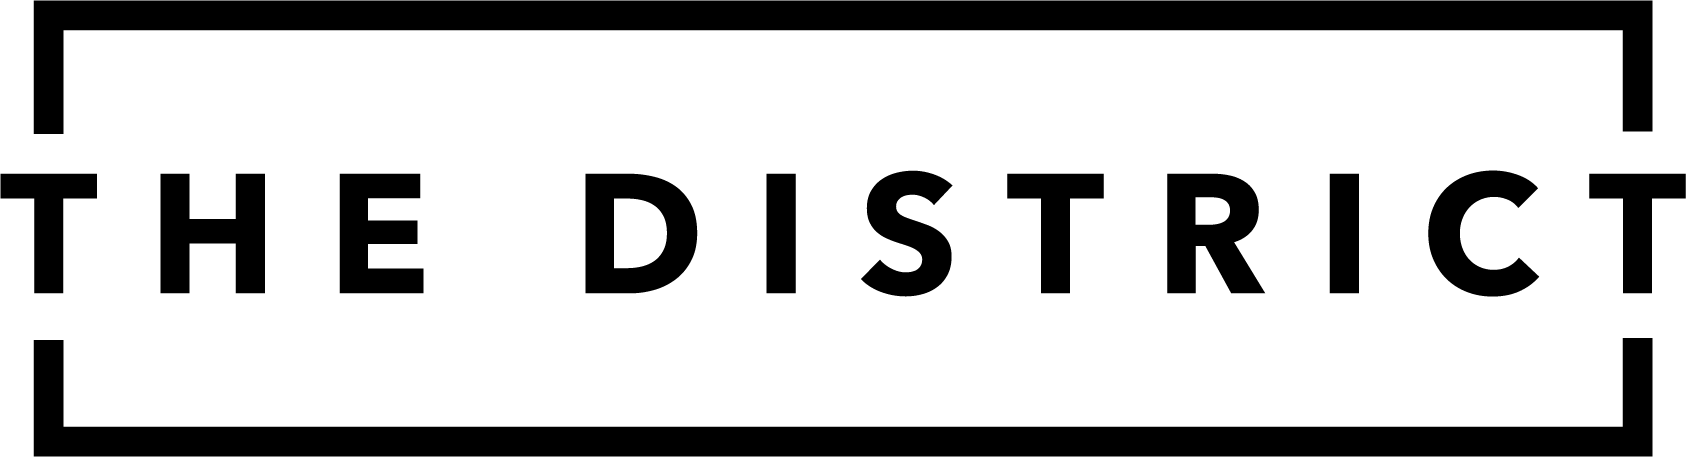 The District Logo in black with transparent background